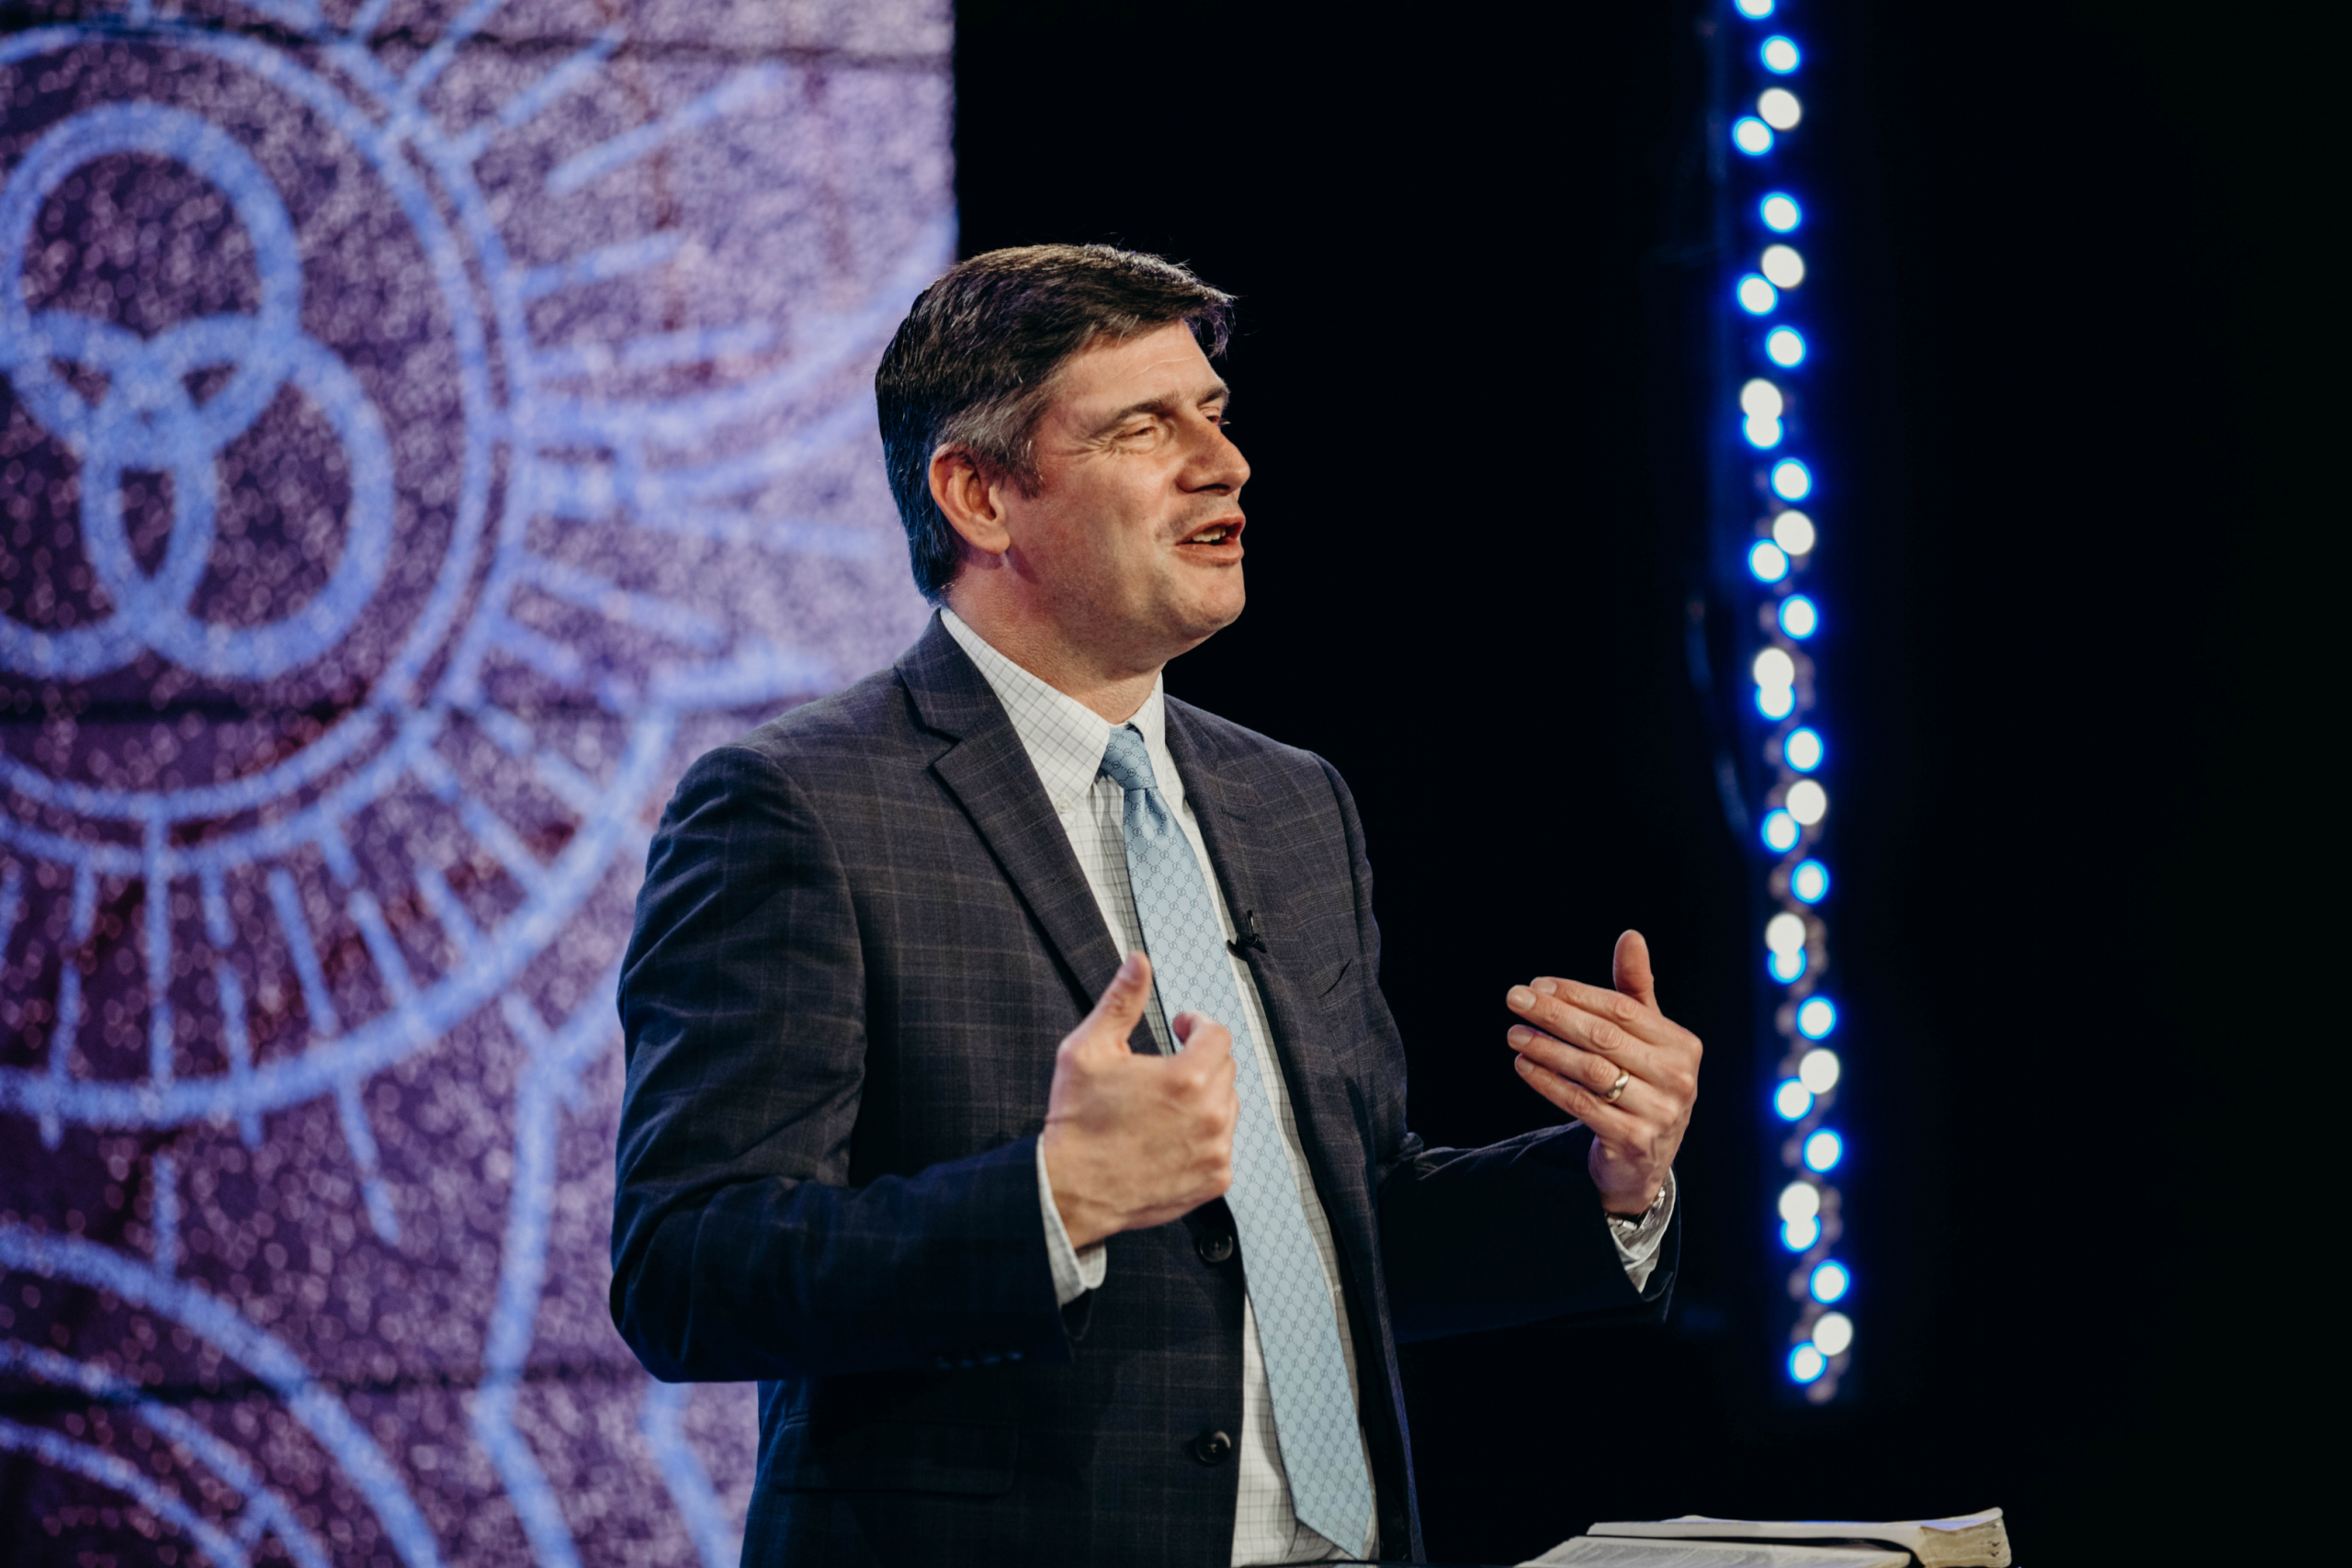 Will Graham brings Convocation message on humble servanthood and being prepared for God's plan